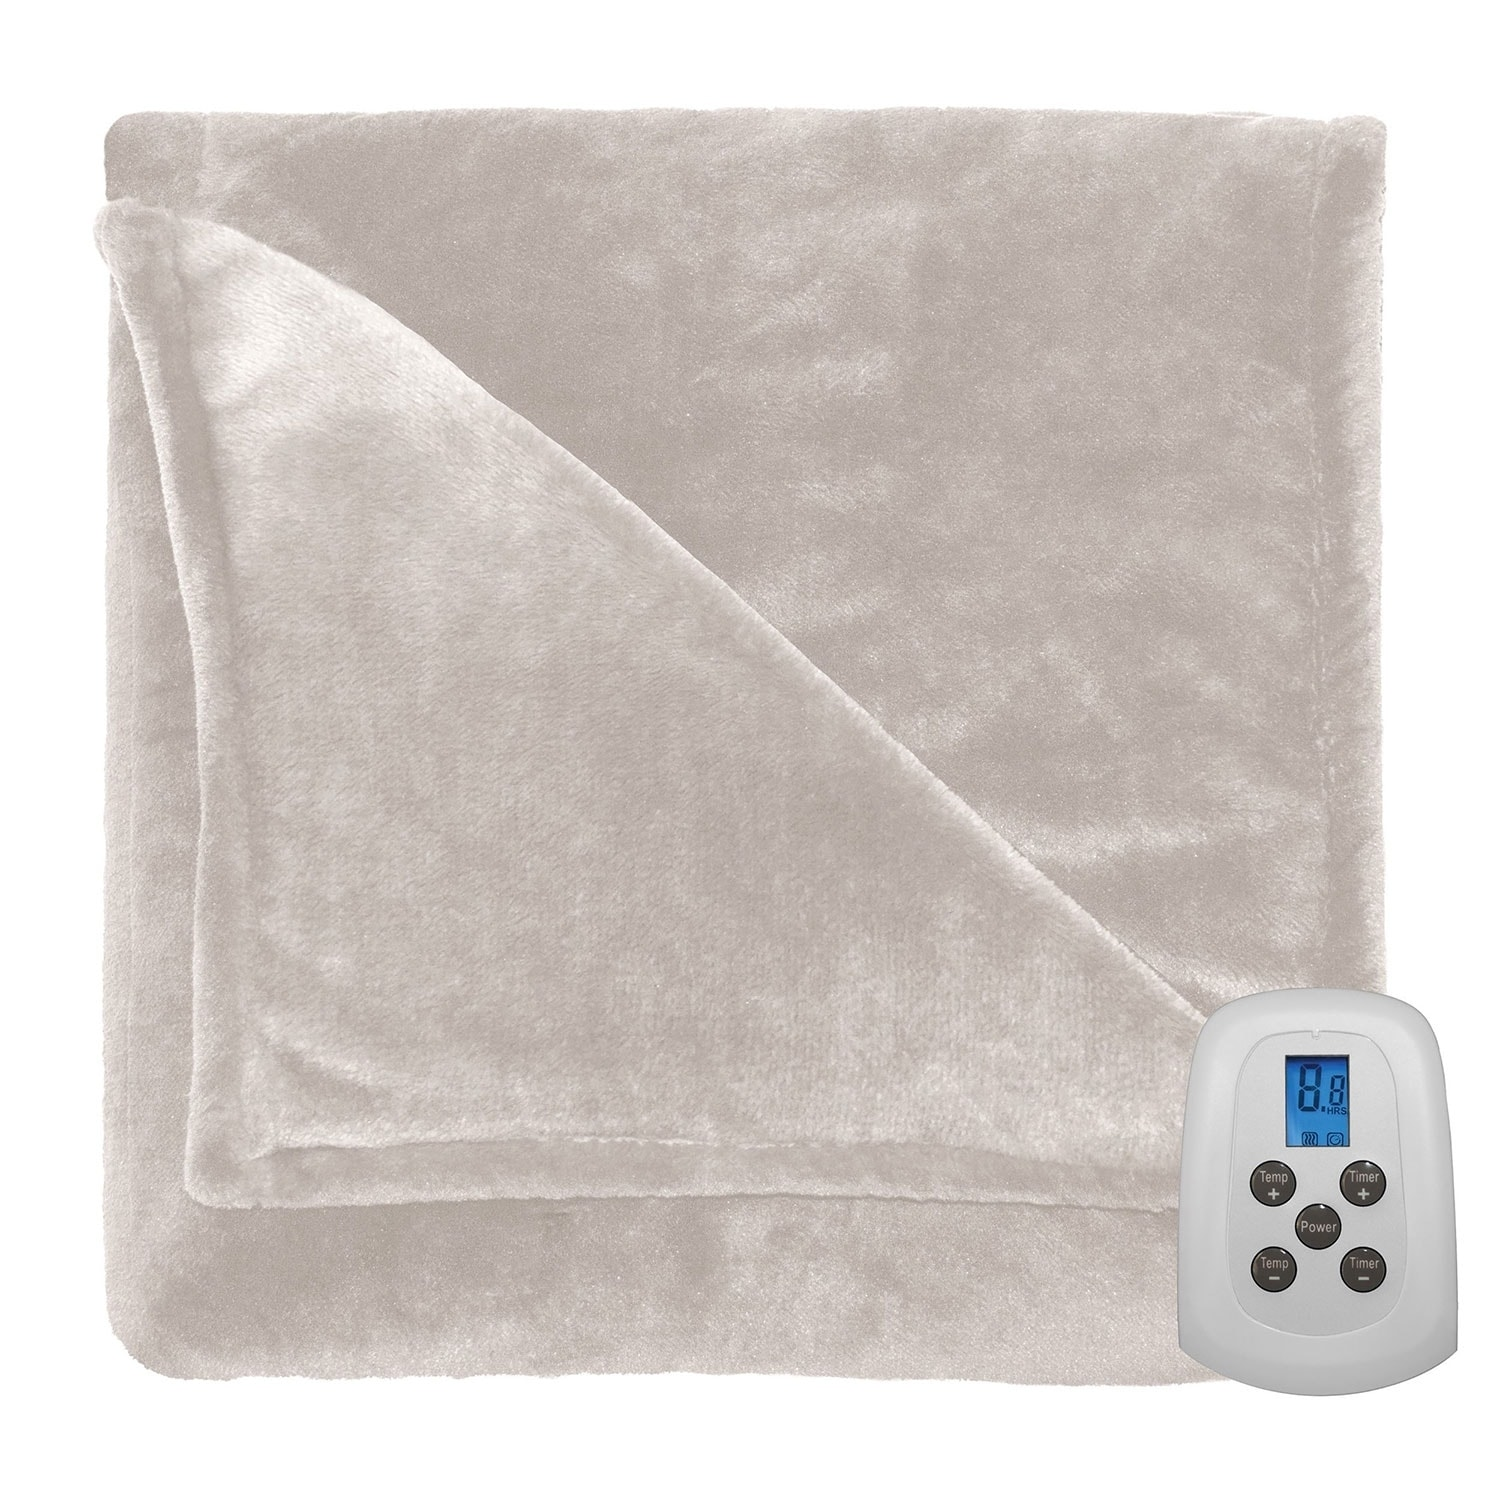 Serta Perfect Fit Silky Plush Electric Heated Warming Blanket